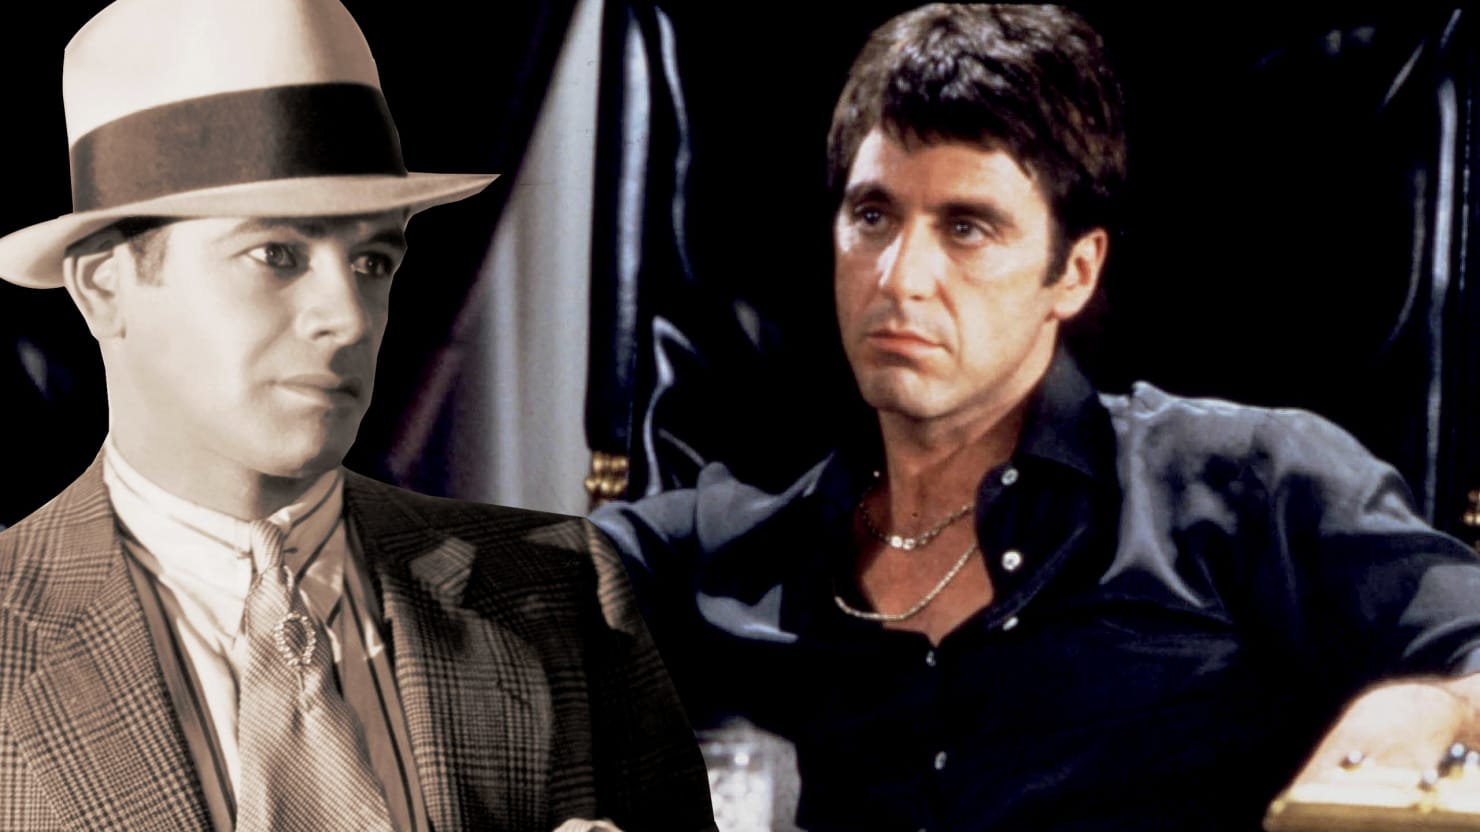 scarface vs scarface old is better